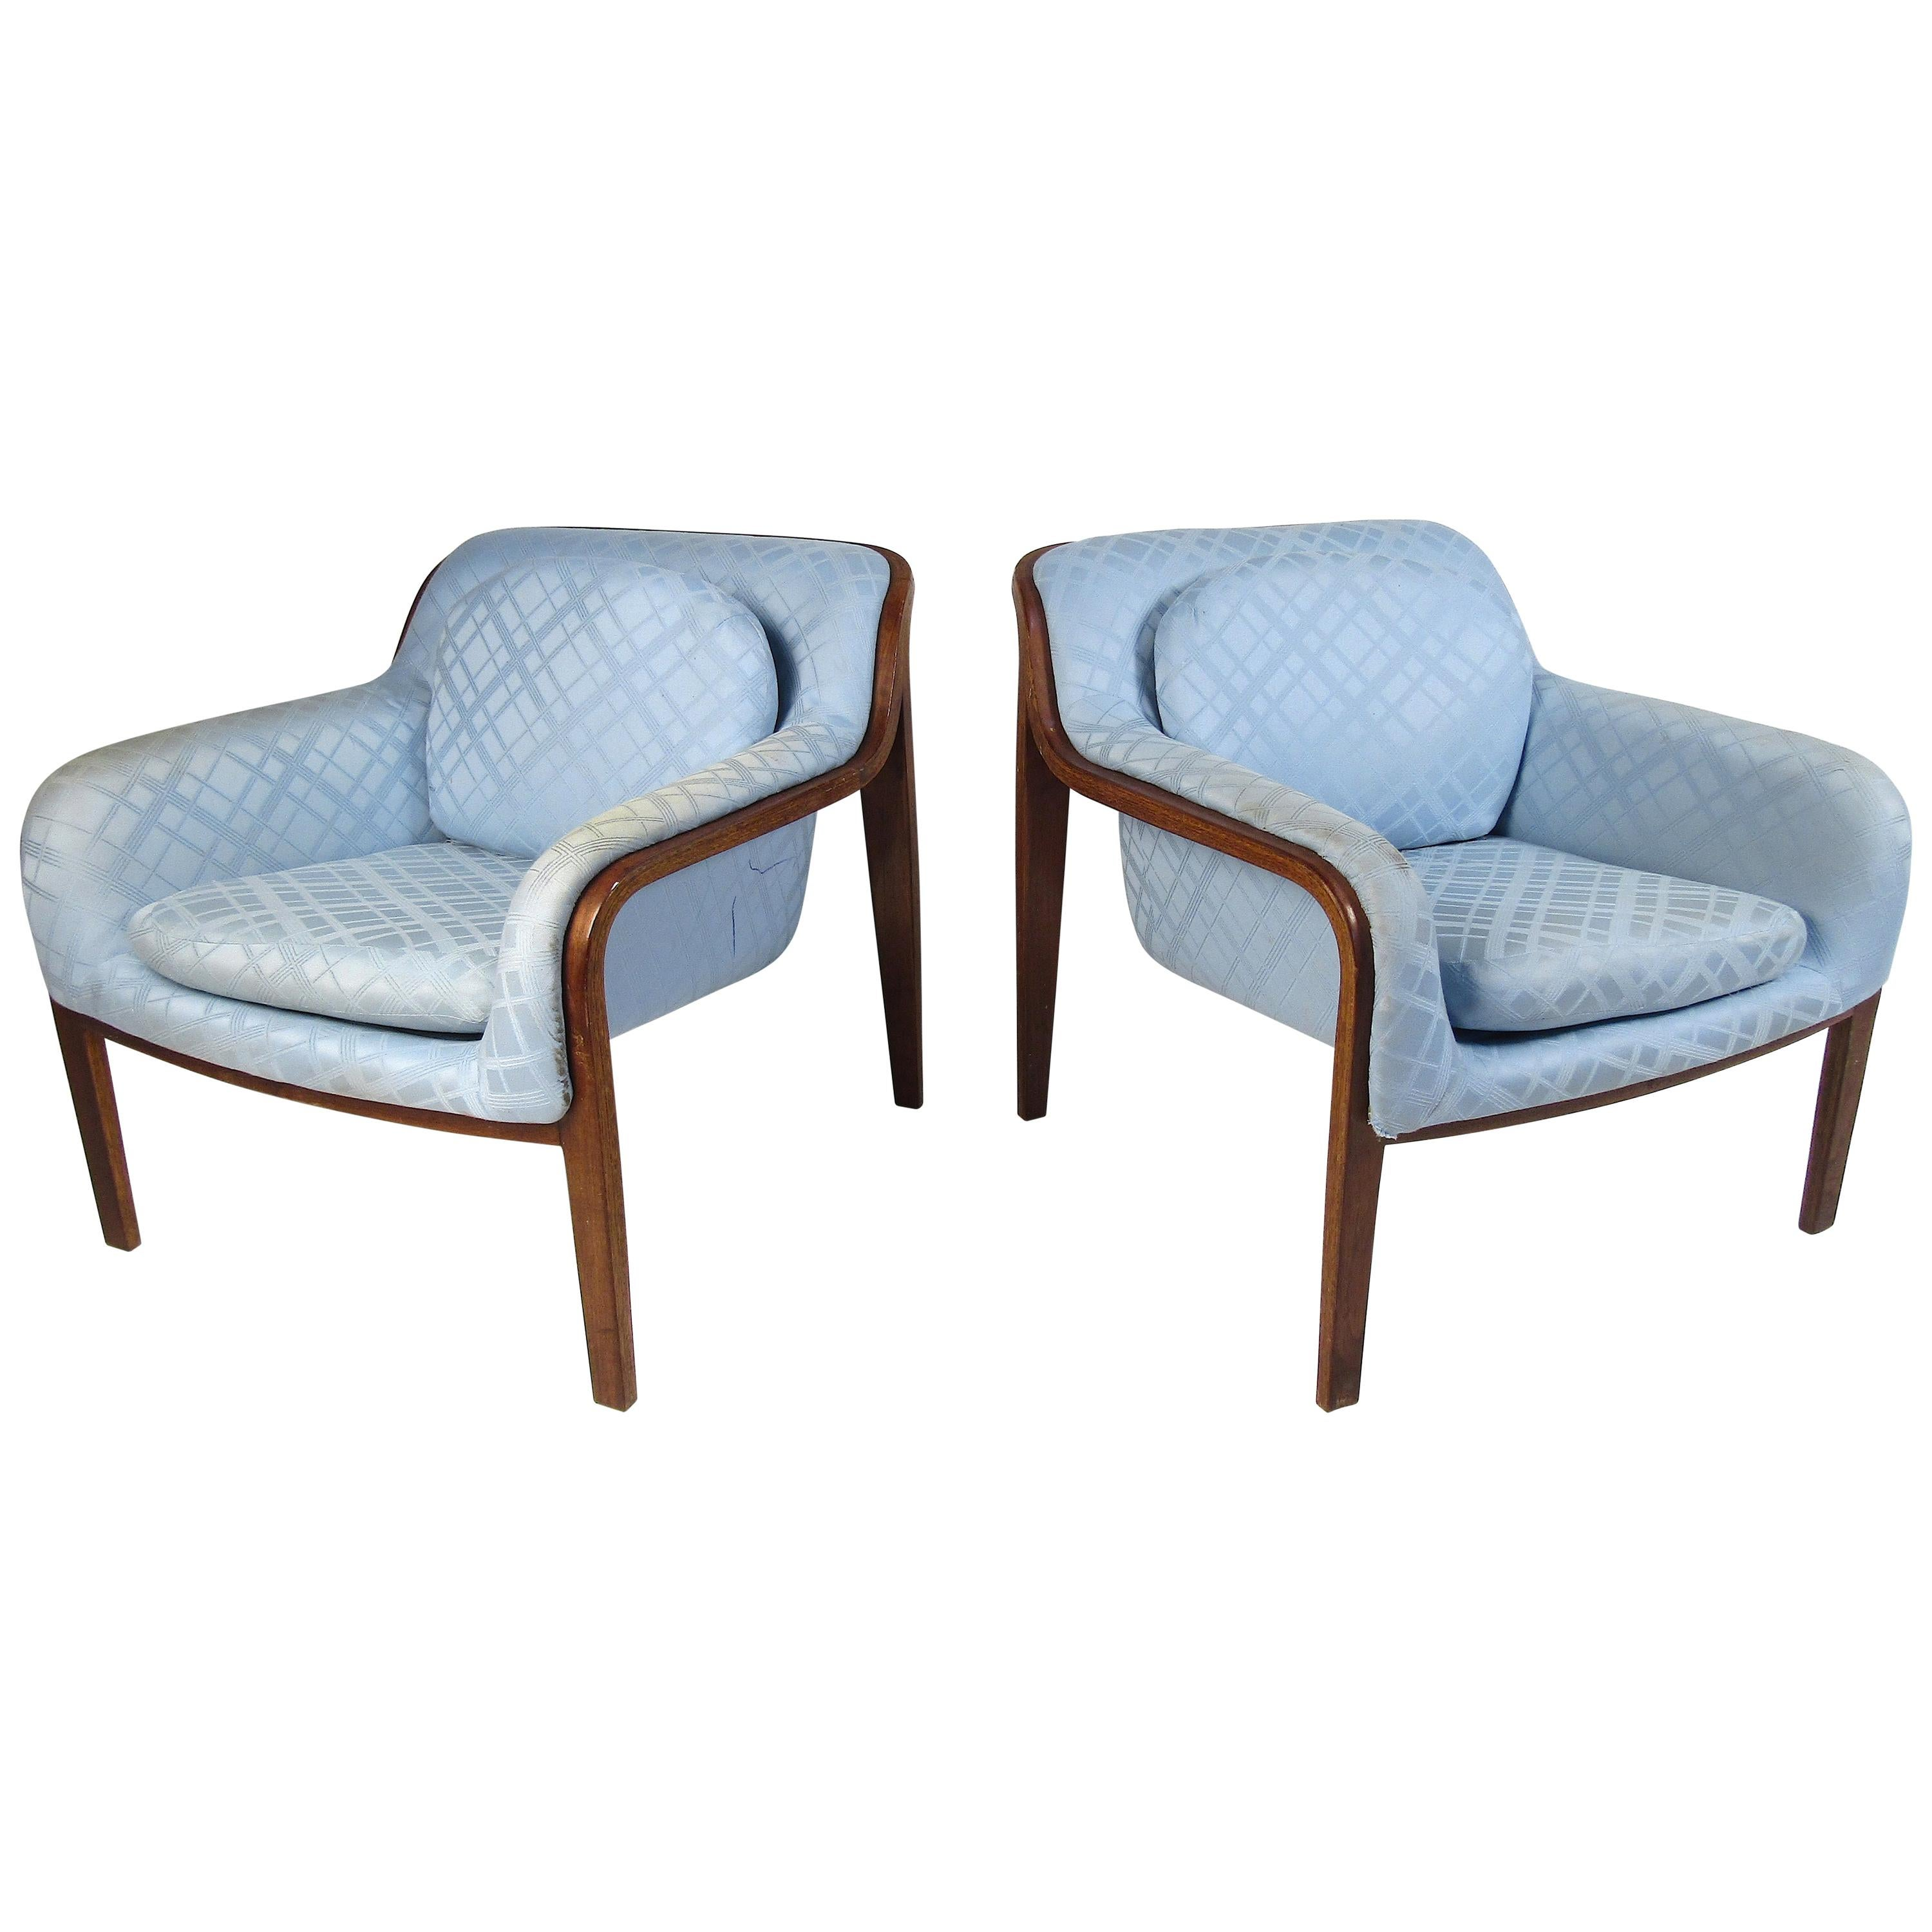 Pair of Midcentury Bentwood Lounge Chairs by Bill Stephens for Knoll